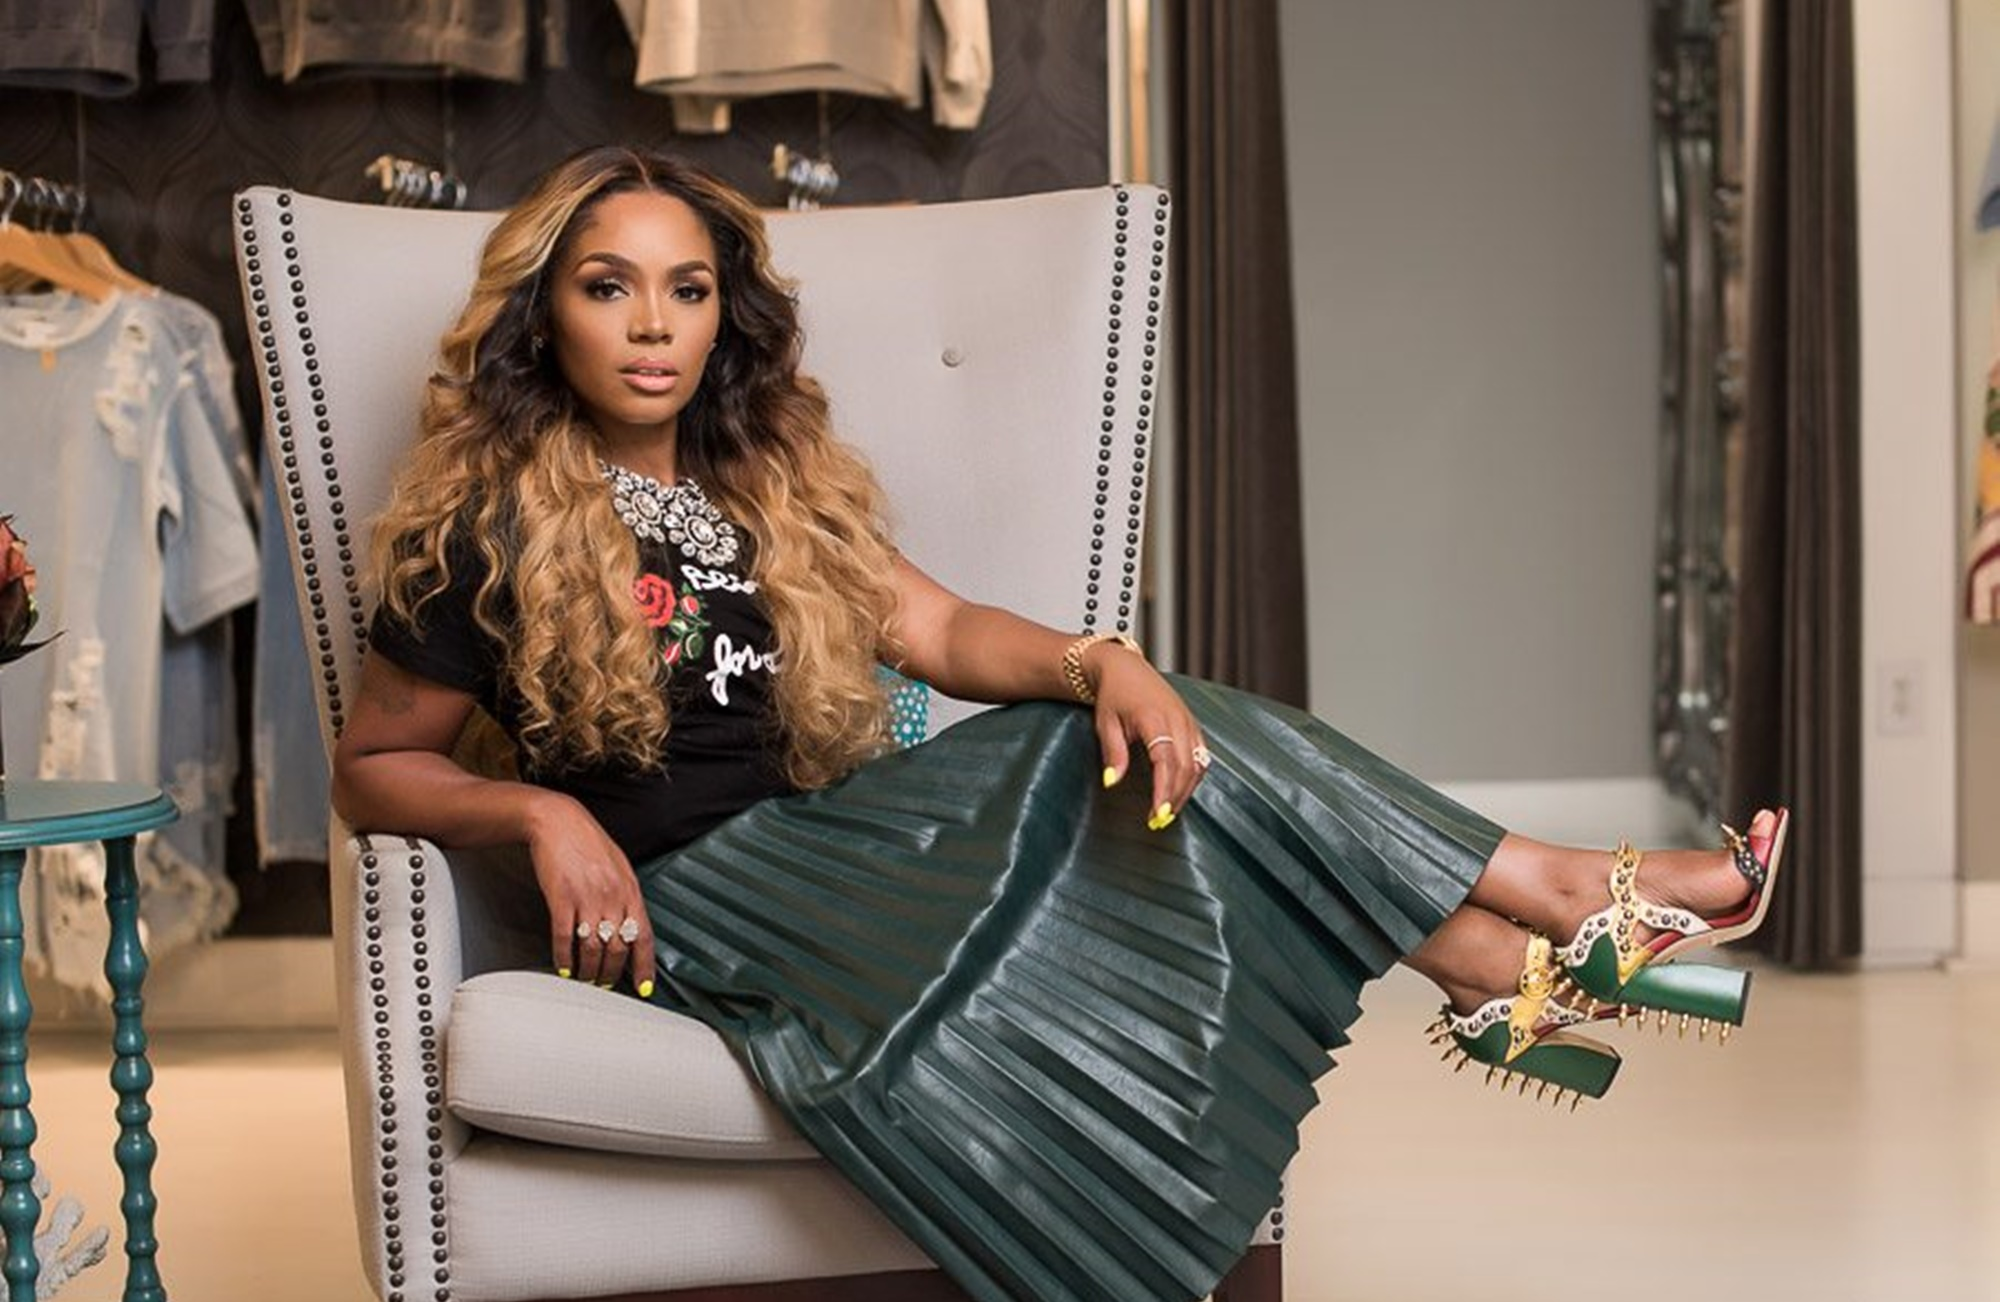 Rasheeda Frost Is Featured In Krave Magazine: 'The Future Is Female' - Check Out The Pages